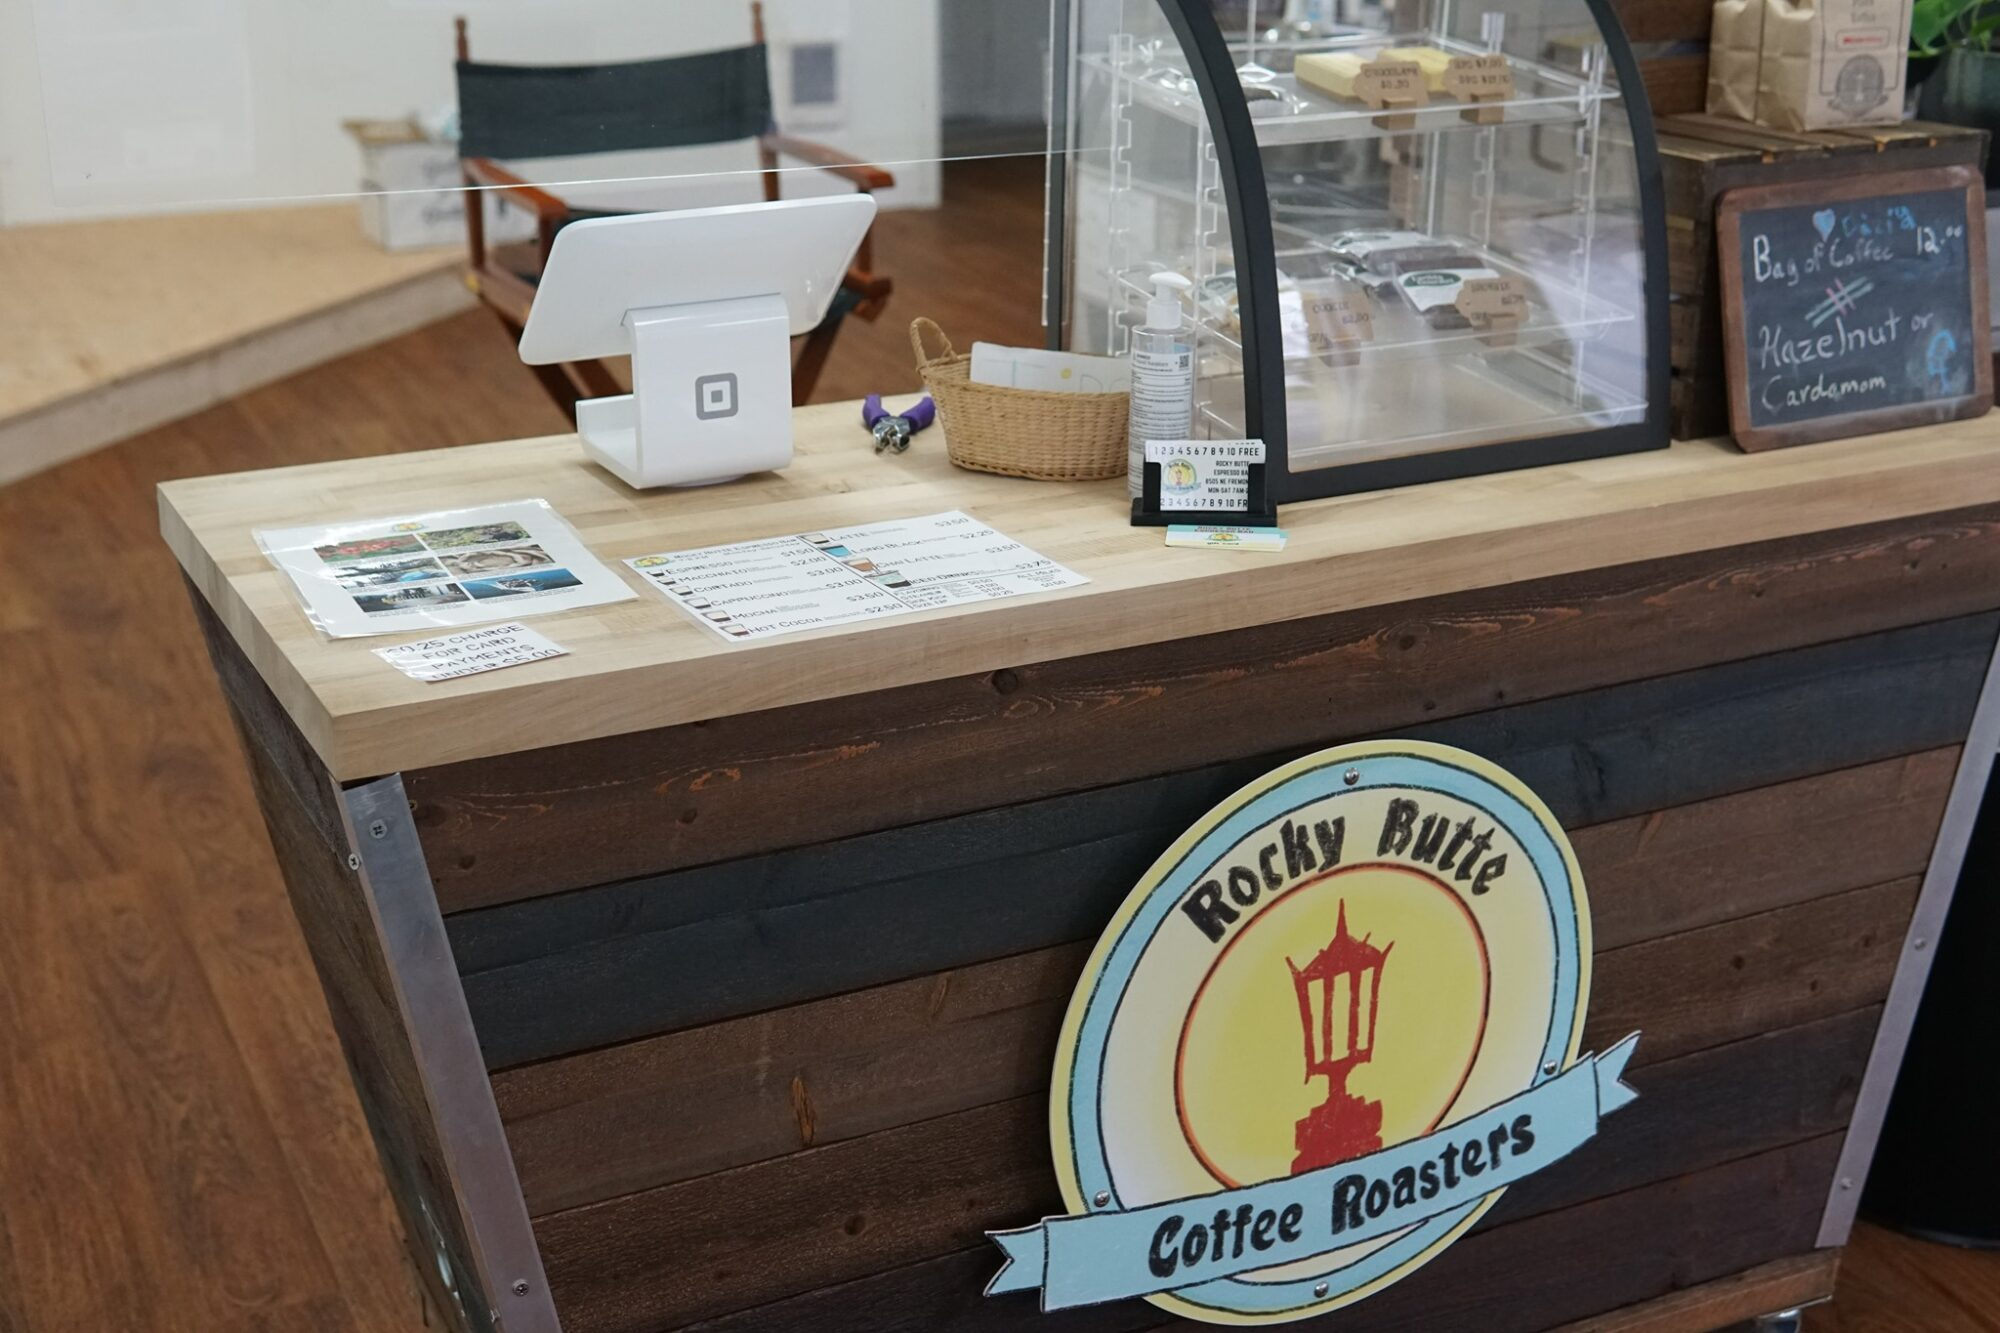 rocky-butte-coffee-roasters-update-portland-oregon